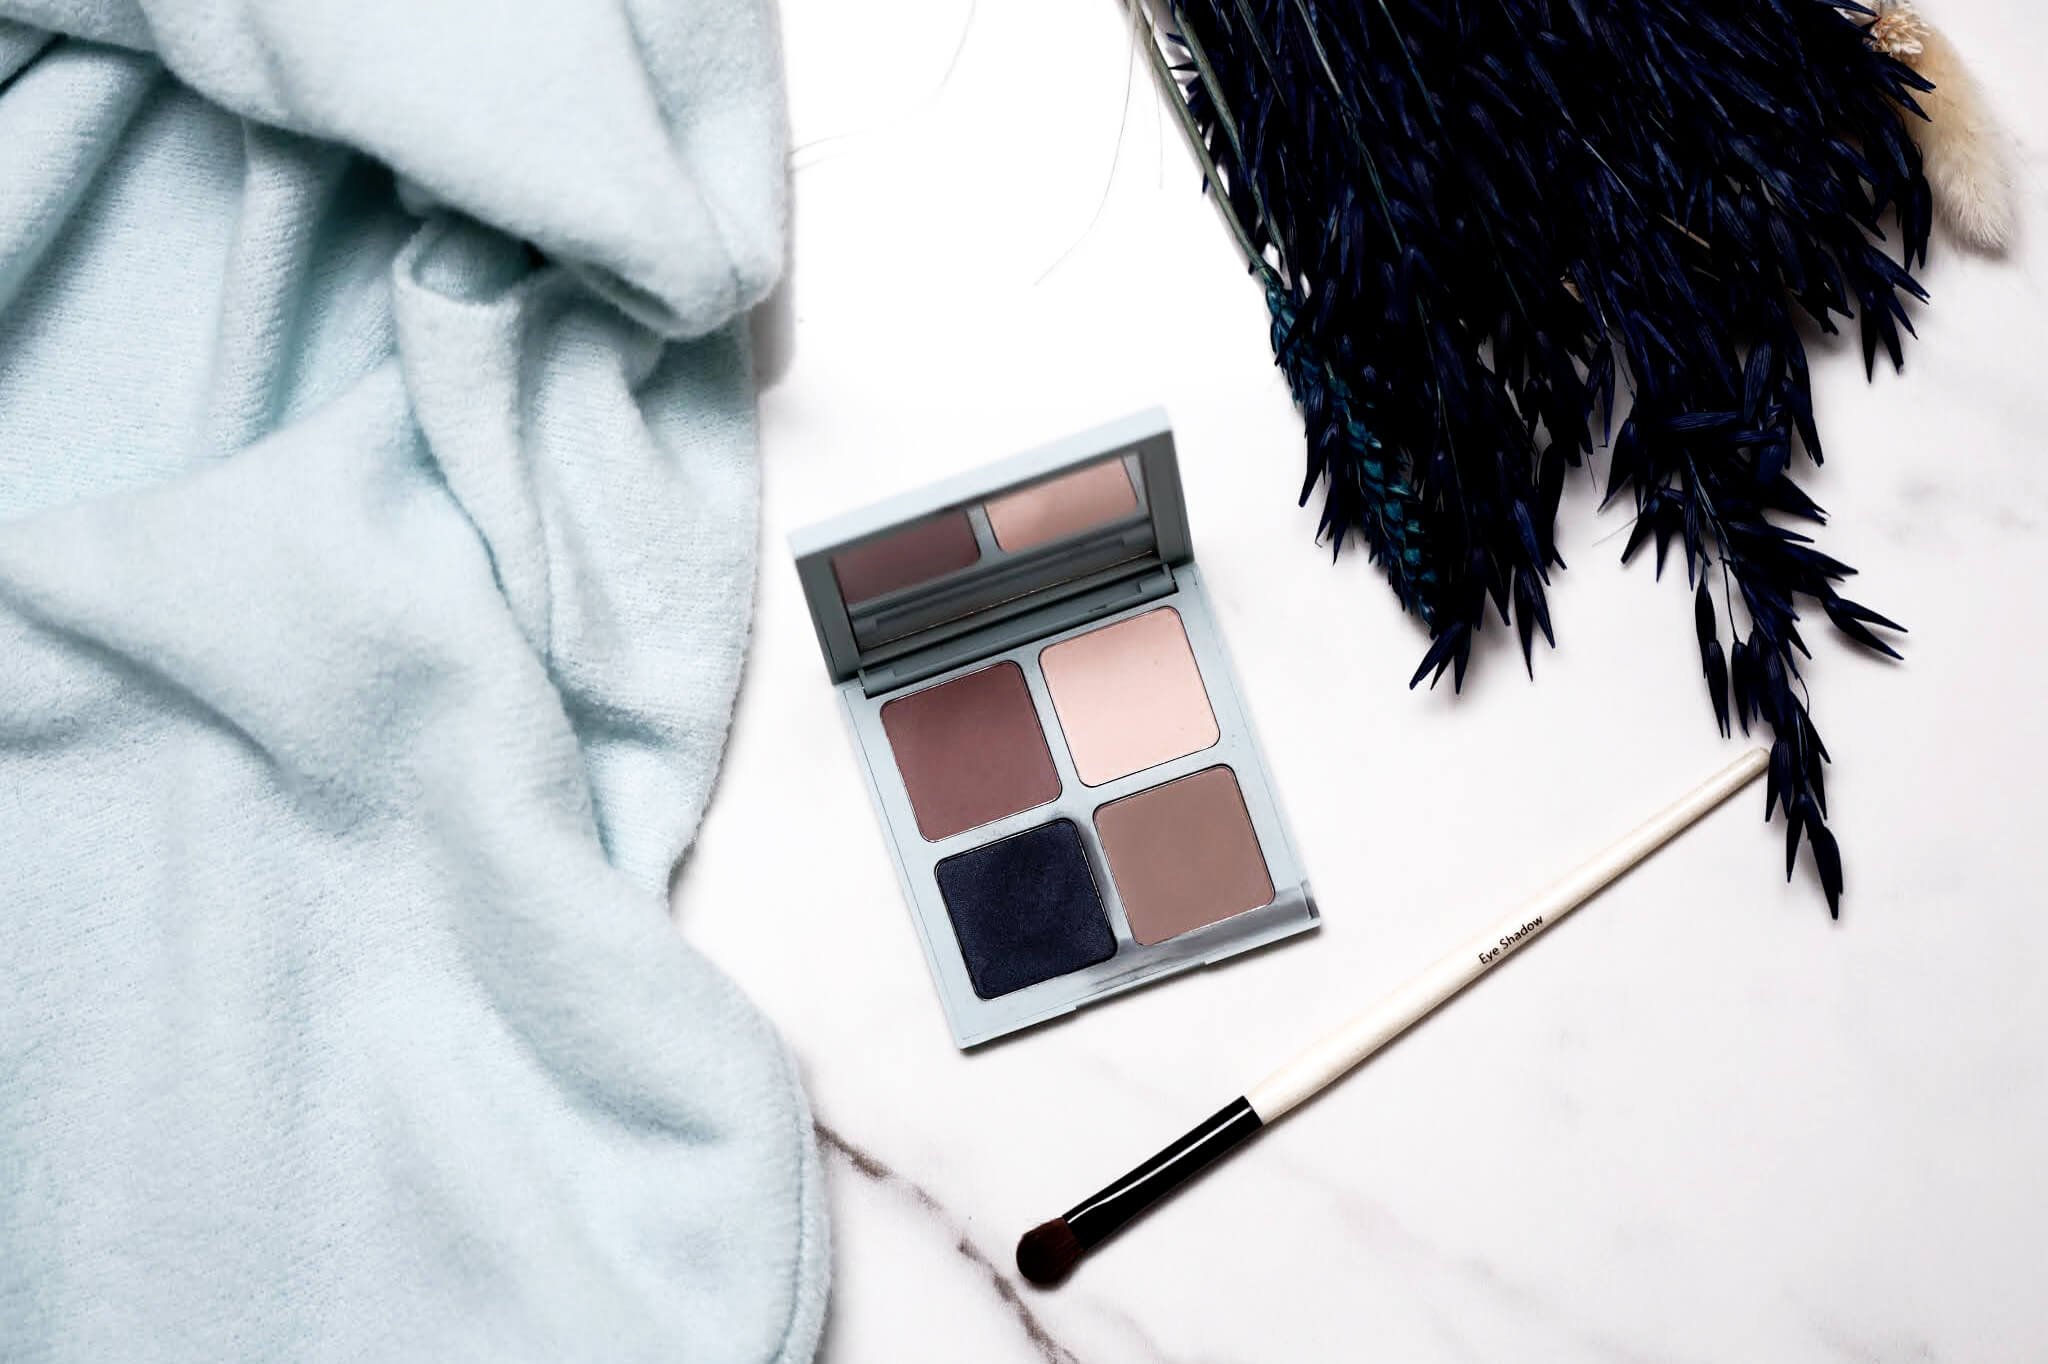 Vapour Eyeshadow Quad Palette Yeux Intention